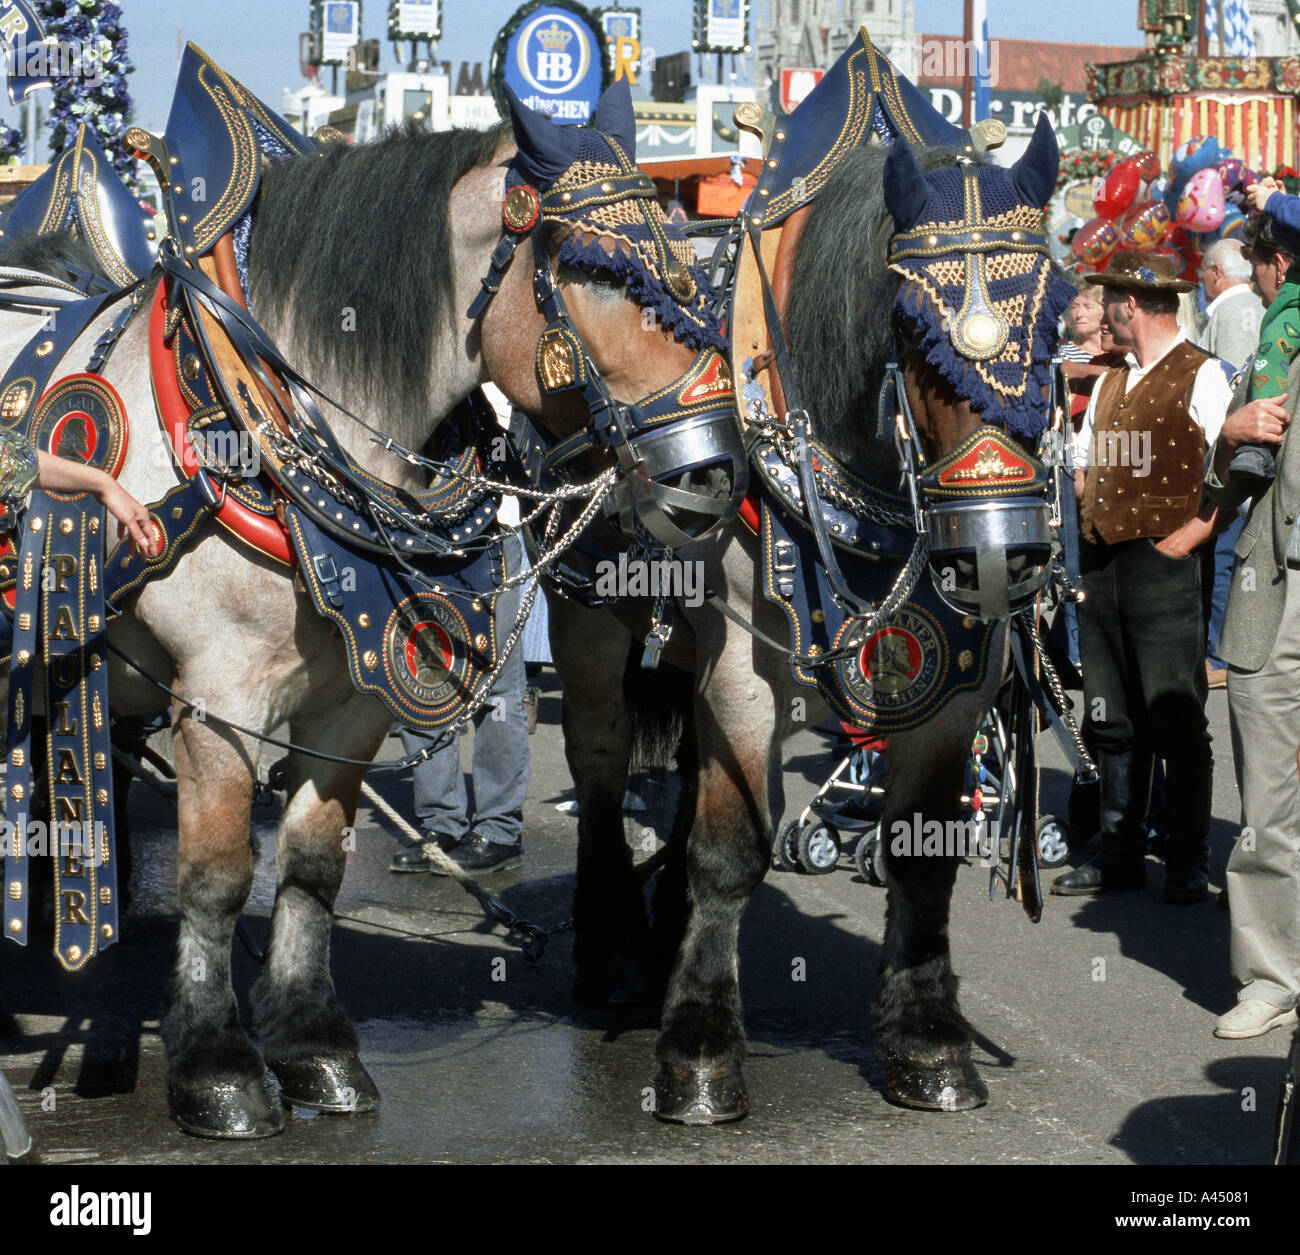 decorated horses of the brewery oktoberfest munich bar cultural culture dine dining dinner drink drinks drinking eat e - Stock Image